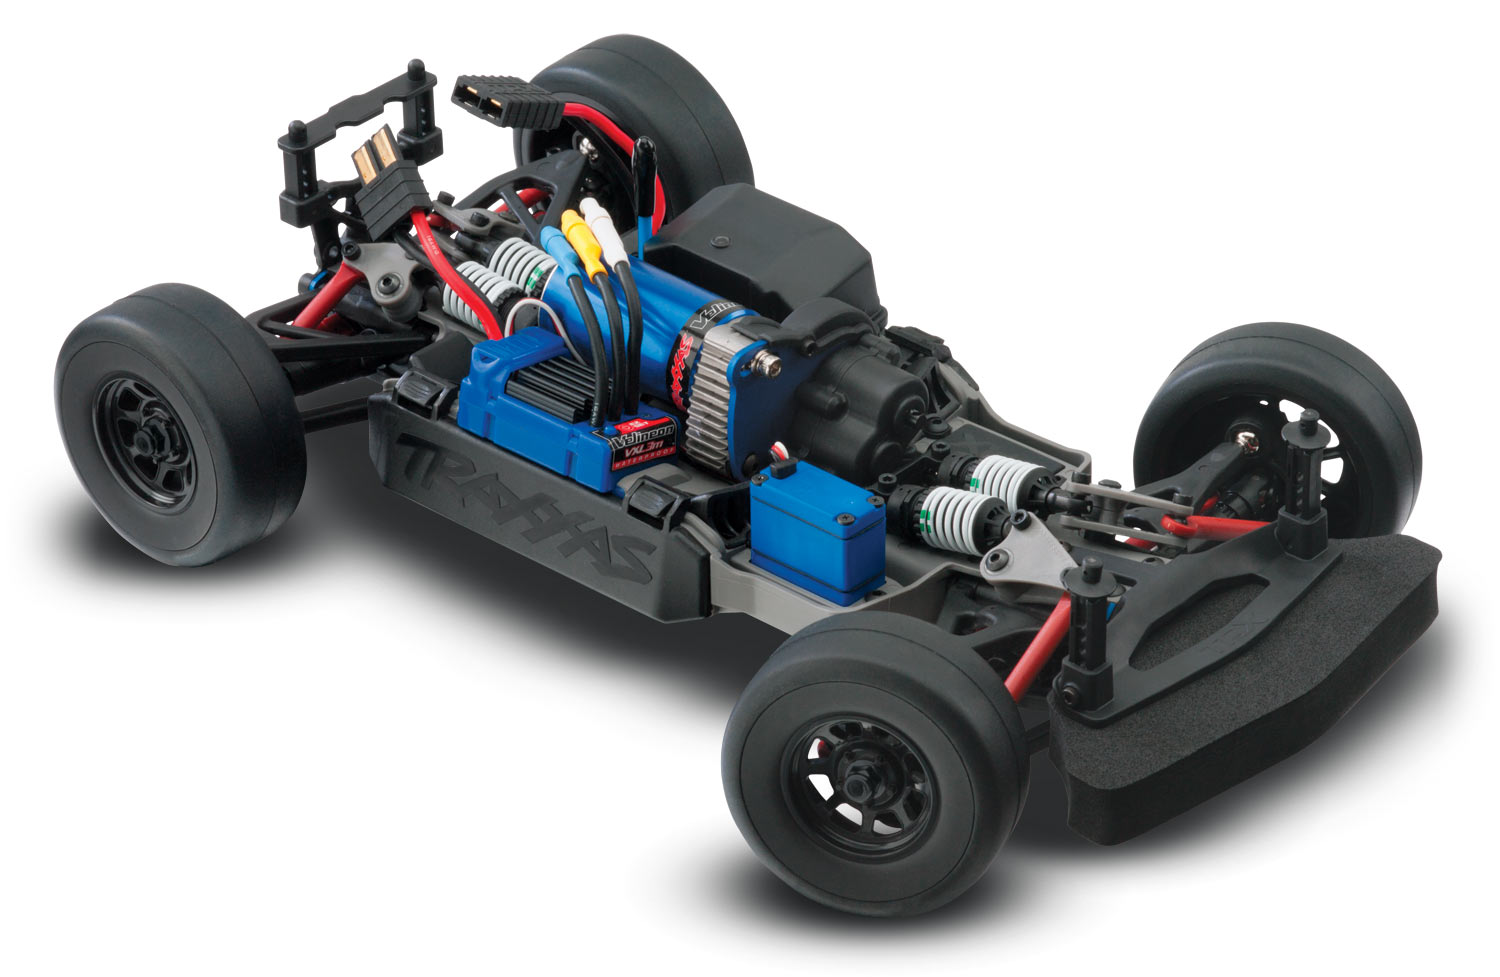 Order Buy Traxxas Rc South Africa Parts Rustler Brushed Quick Start Manual Exploded View Batteries 4 Aa Transmitter